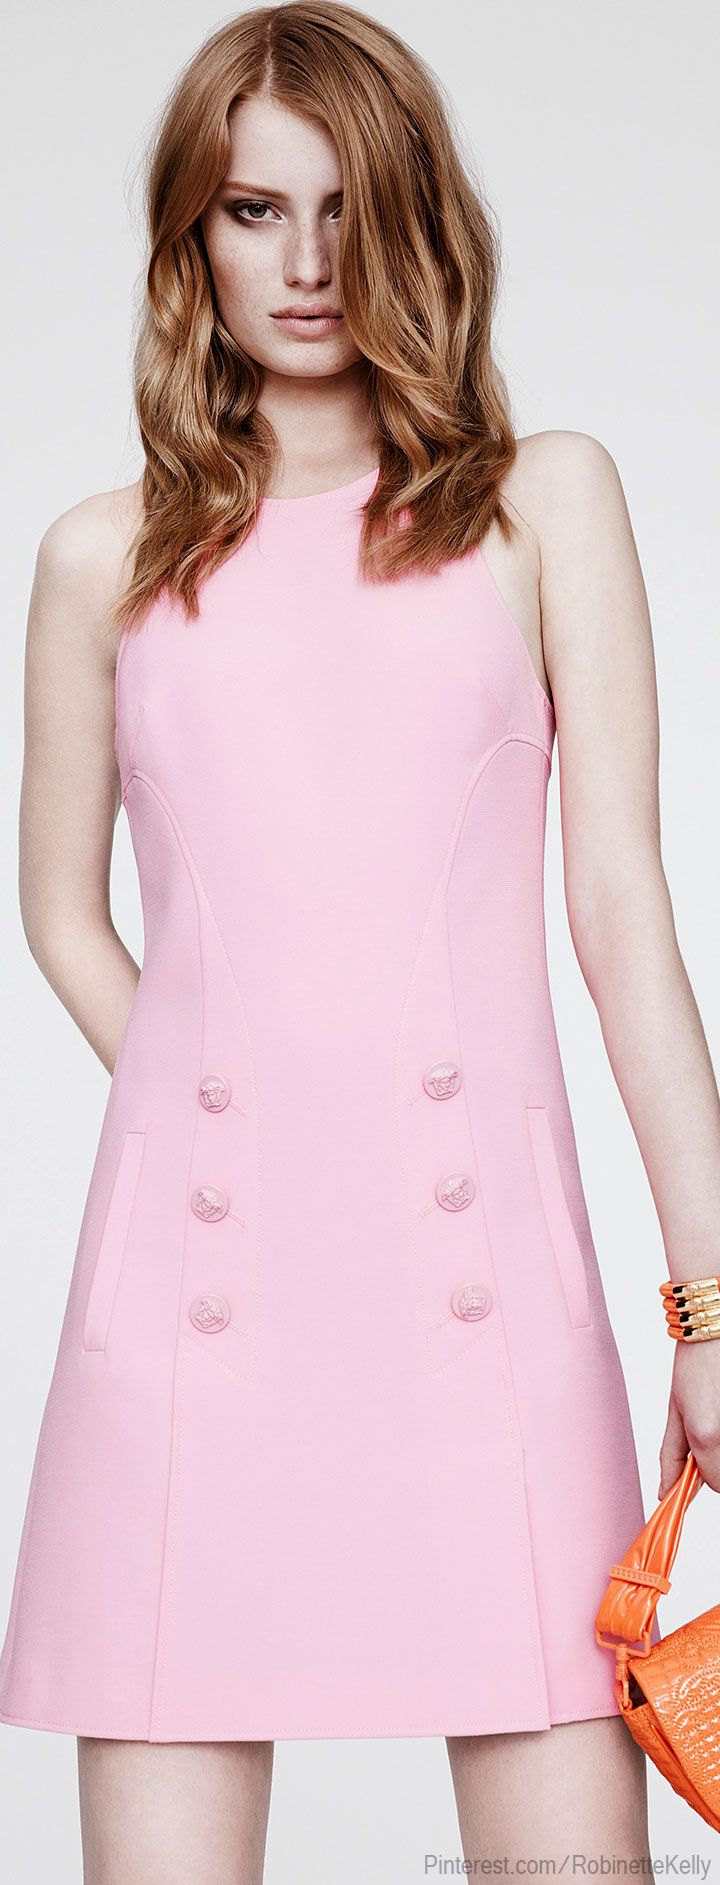 #Versace Resort 2014 #Pink